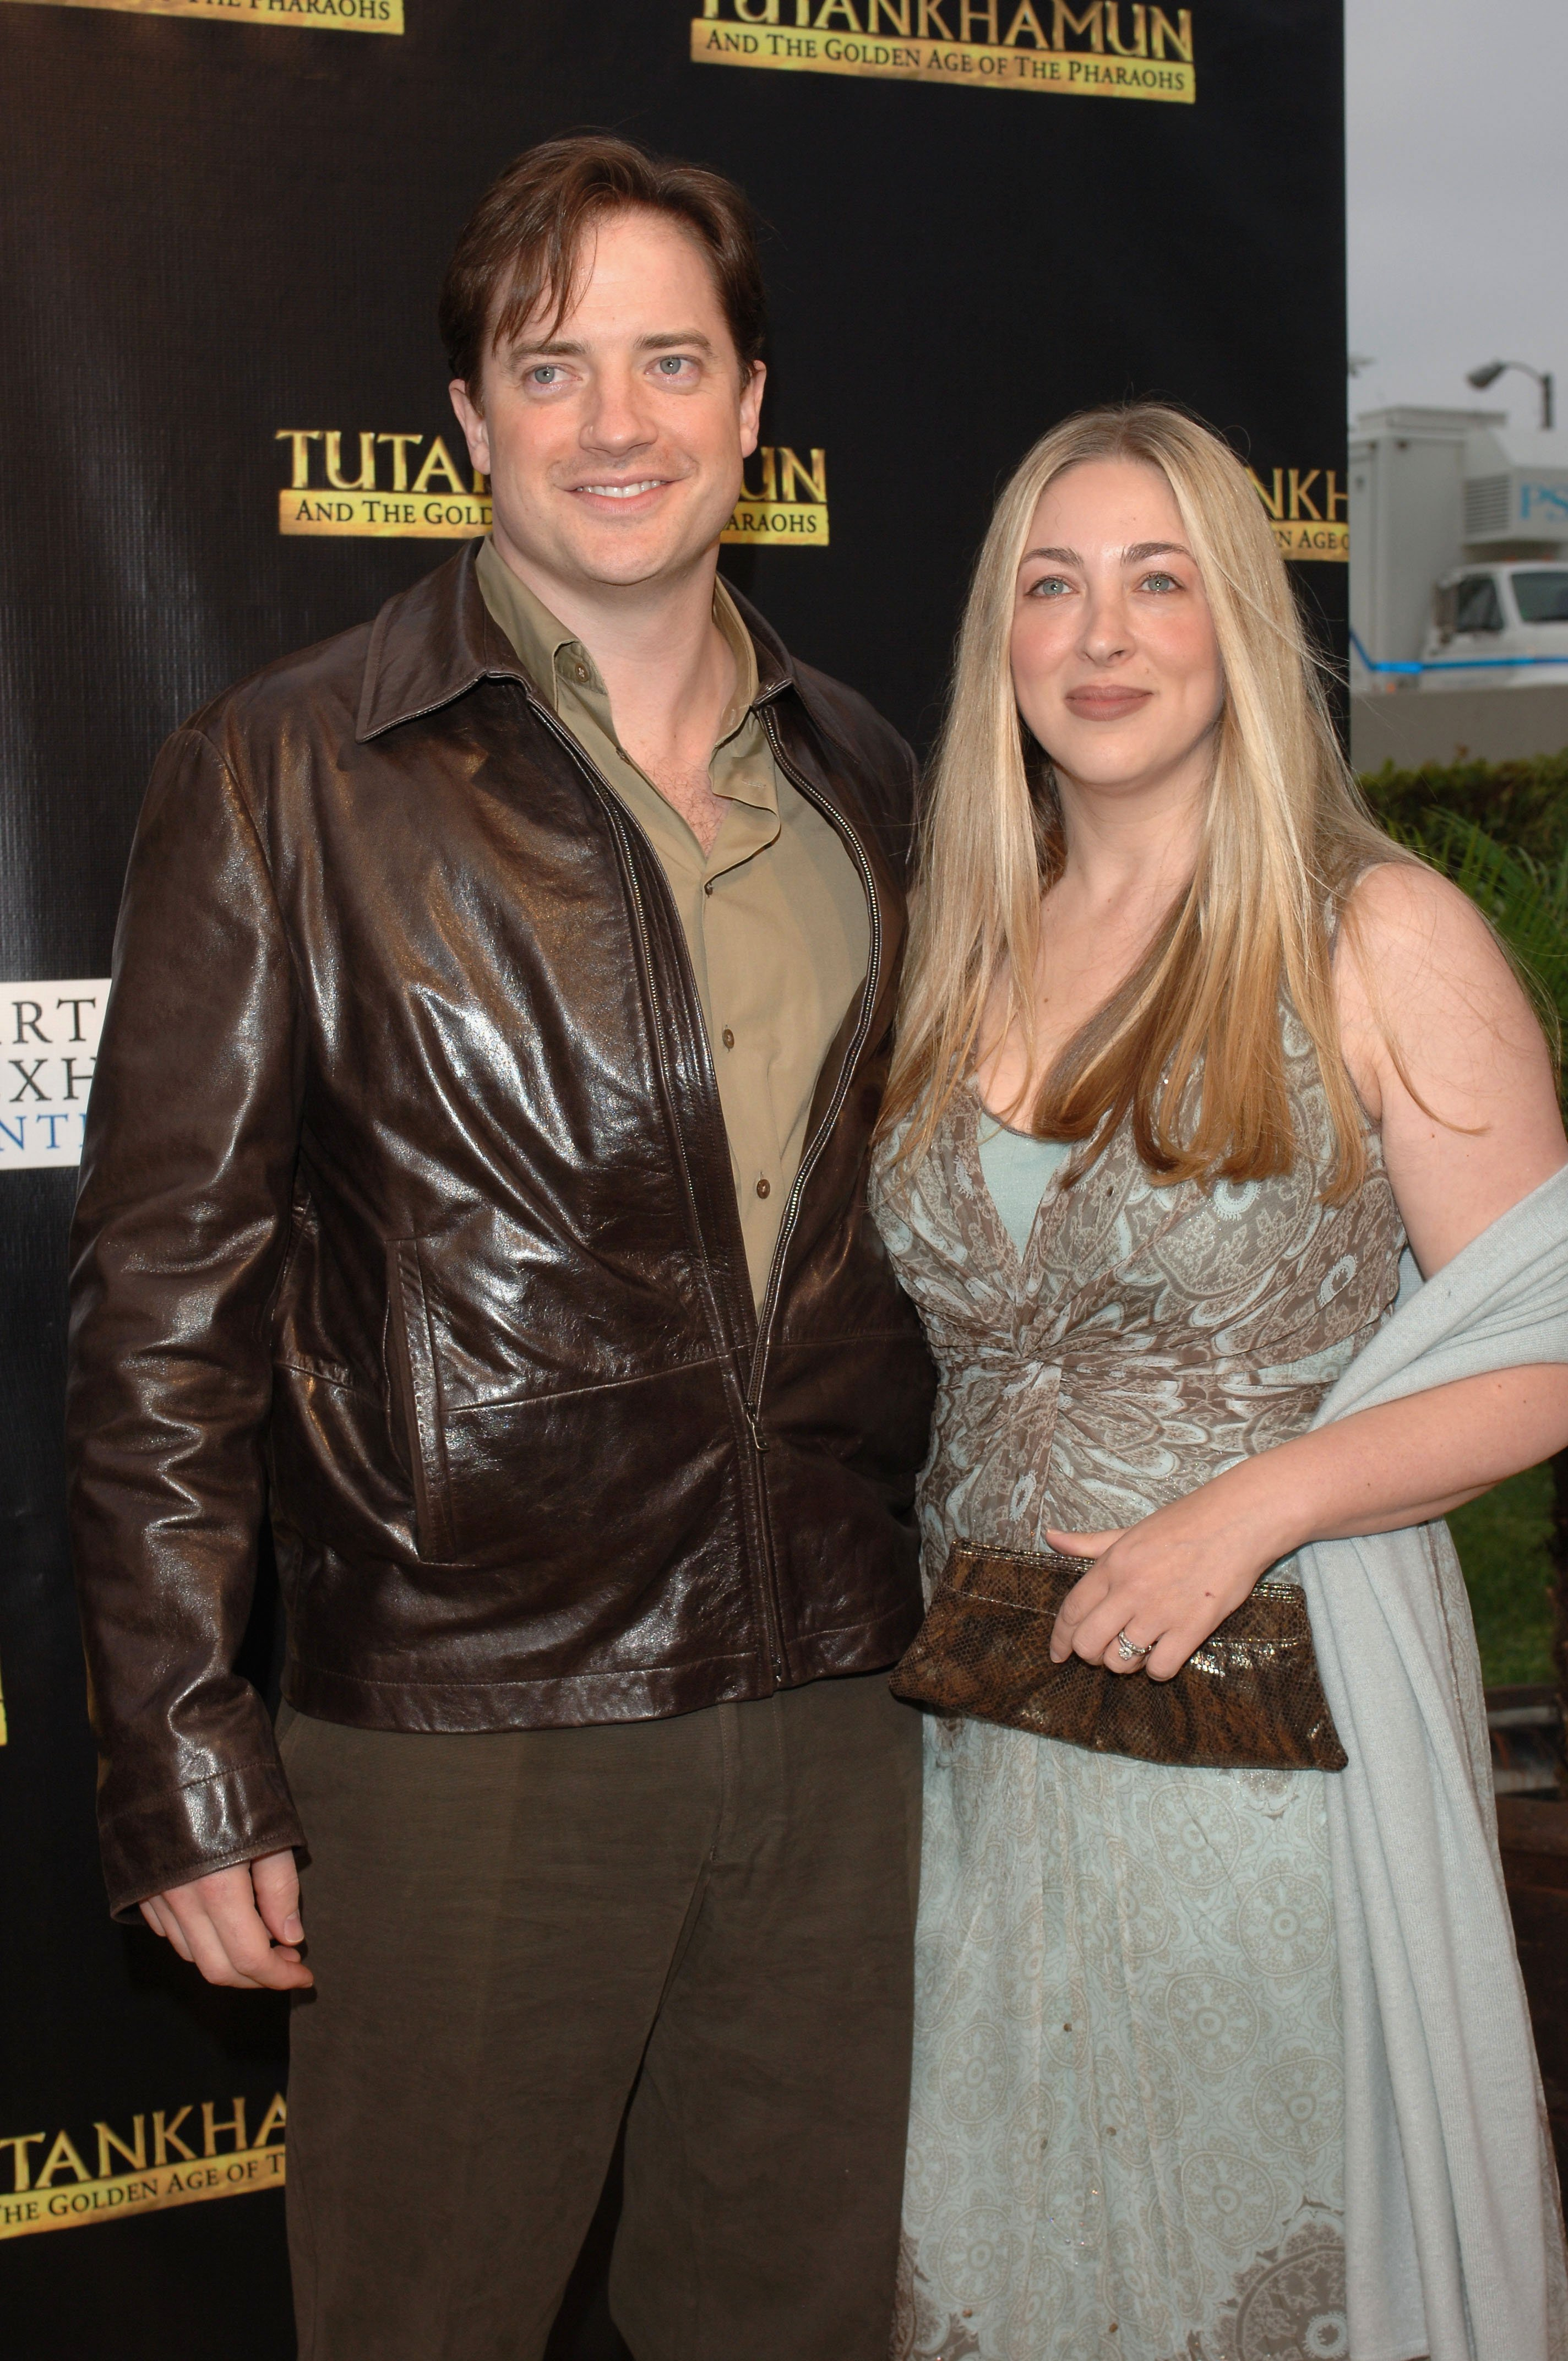 Brendan Fraser and Afton Smith on June 15, 2005 in Los Angeles, California | Source: Getty Images